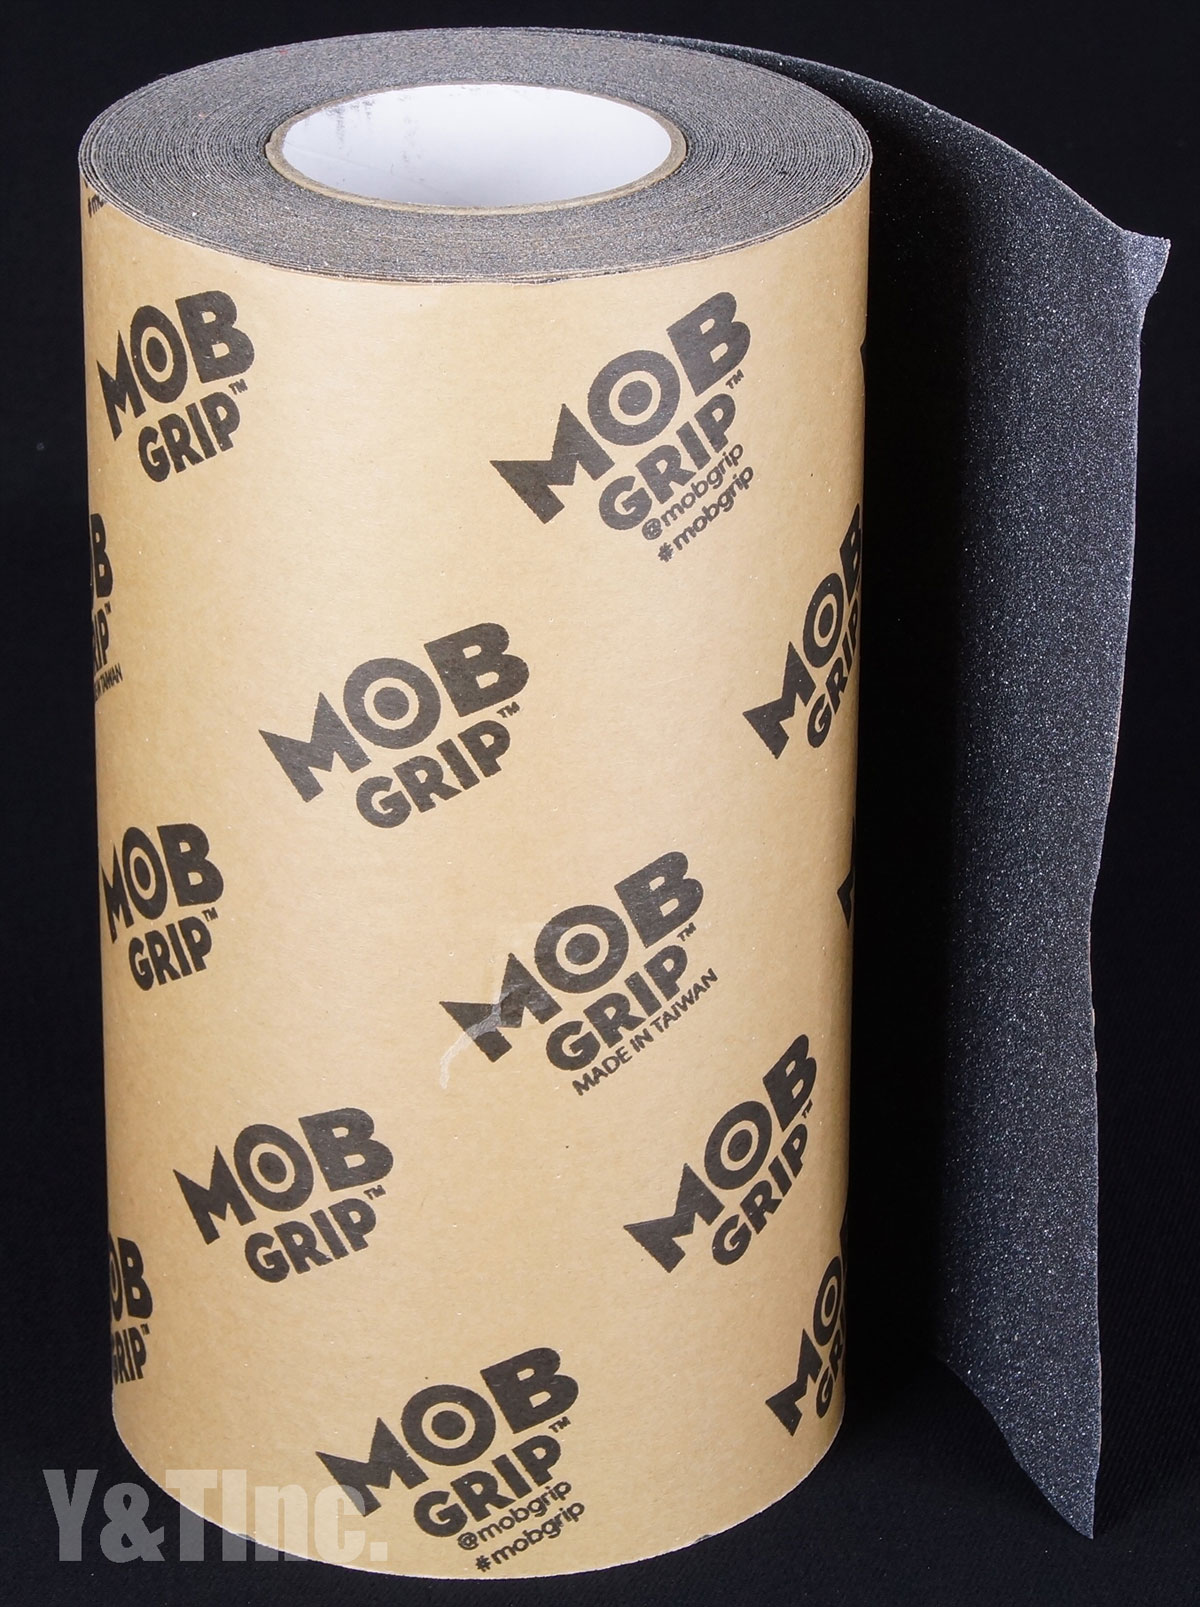 MOB GRIP ROLL 11 BLACK 1